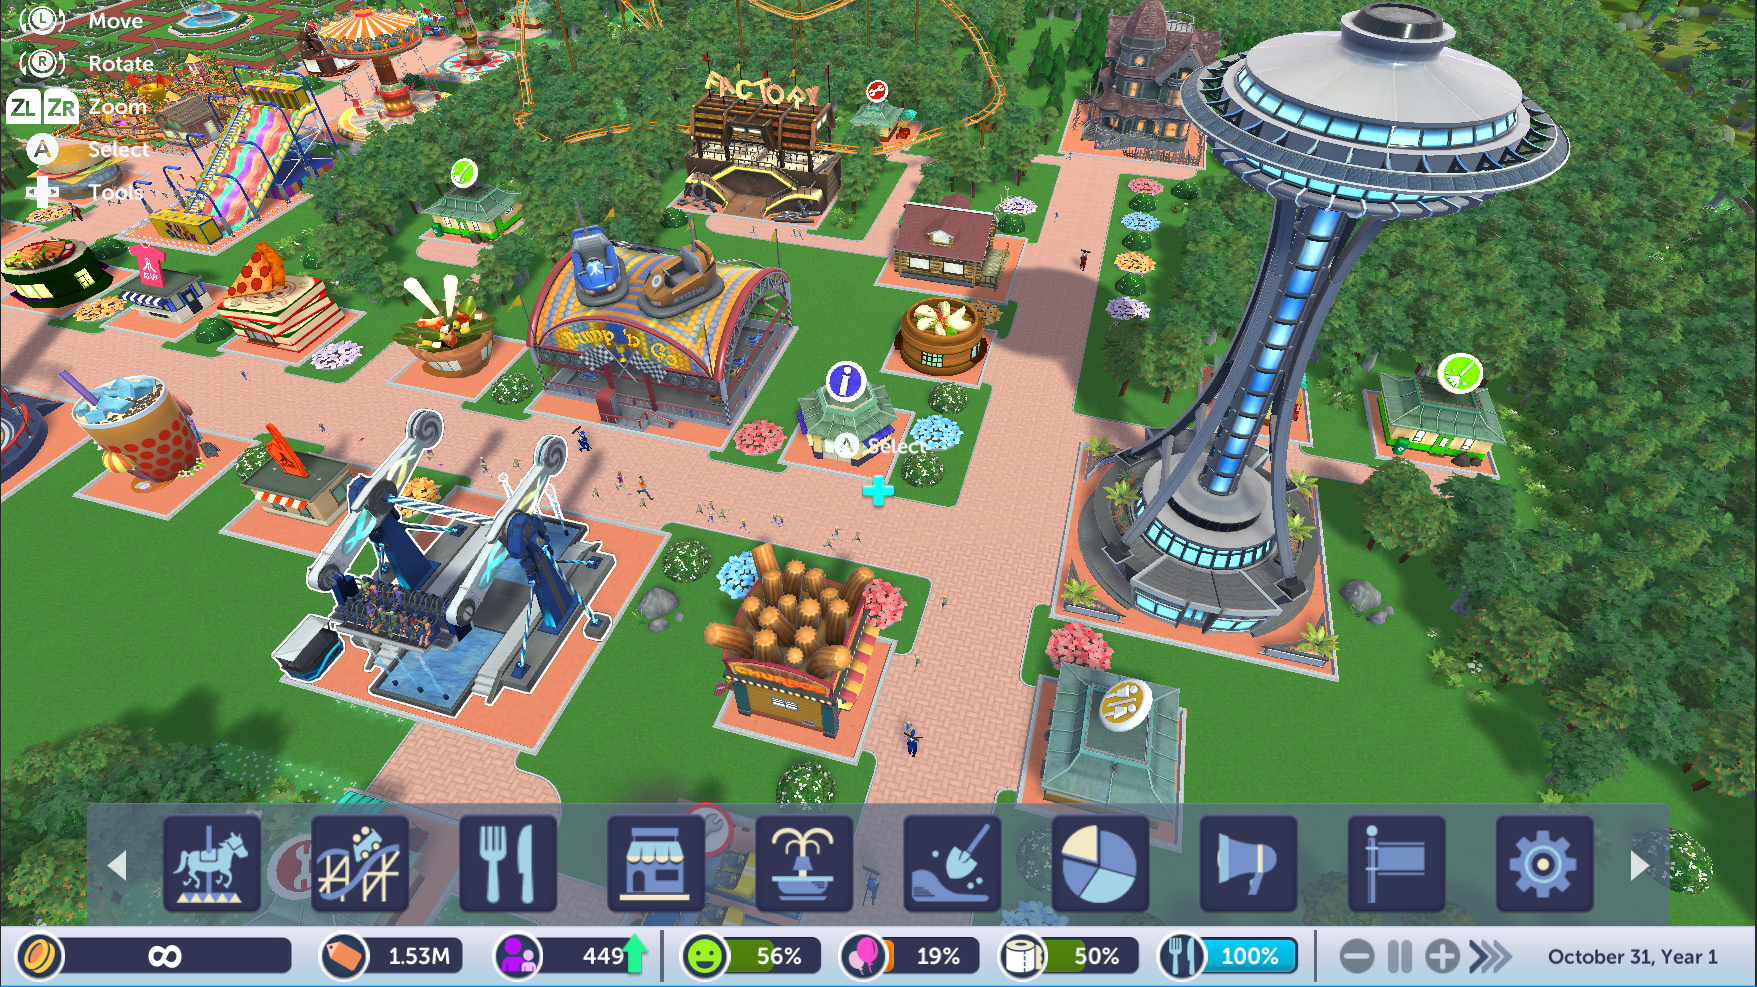 E3 2018: Hands on with Rollercoaster Tycoon Switch - Vooks